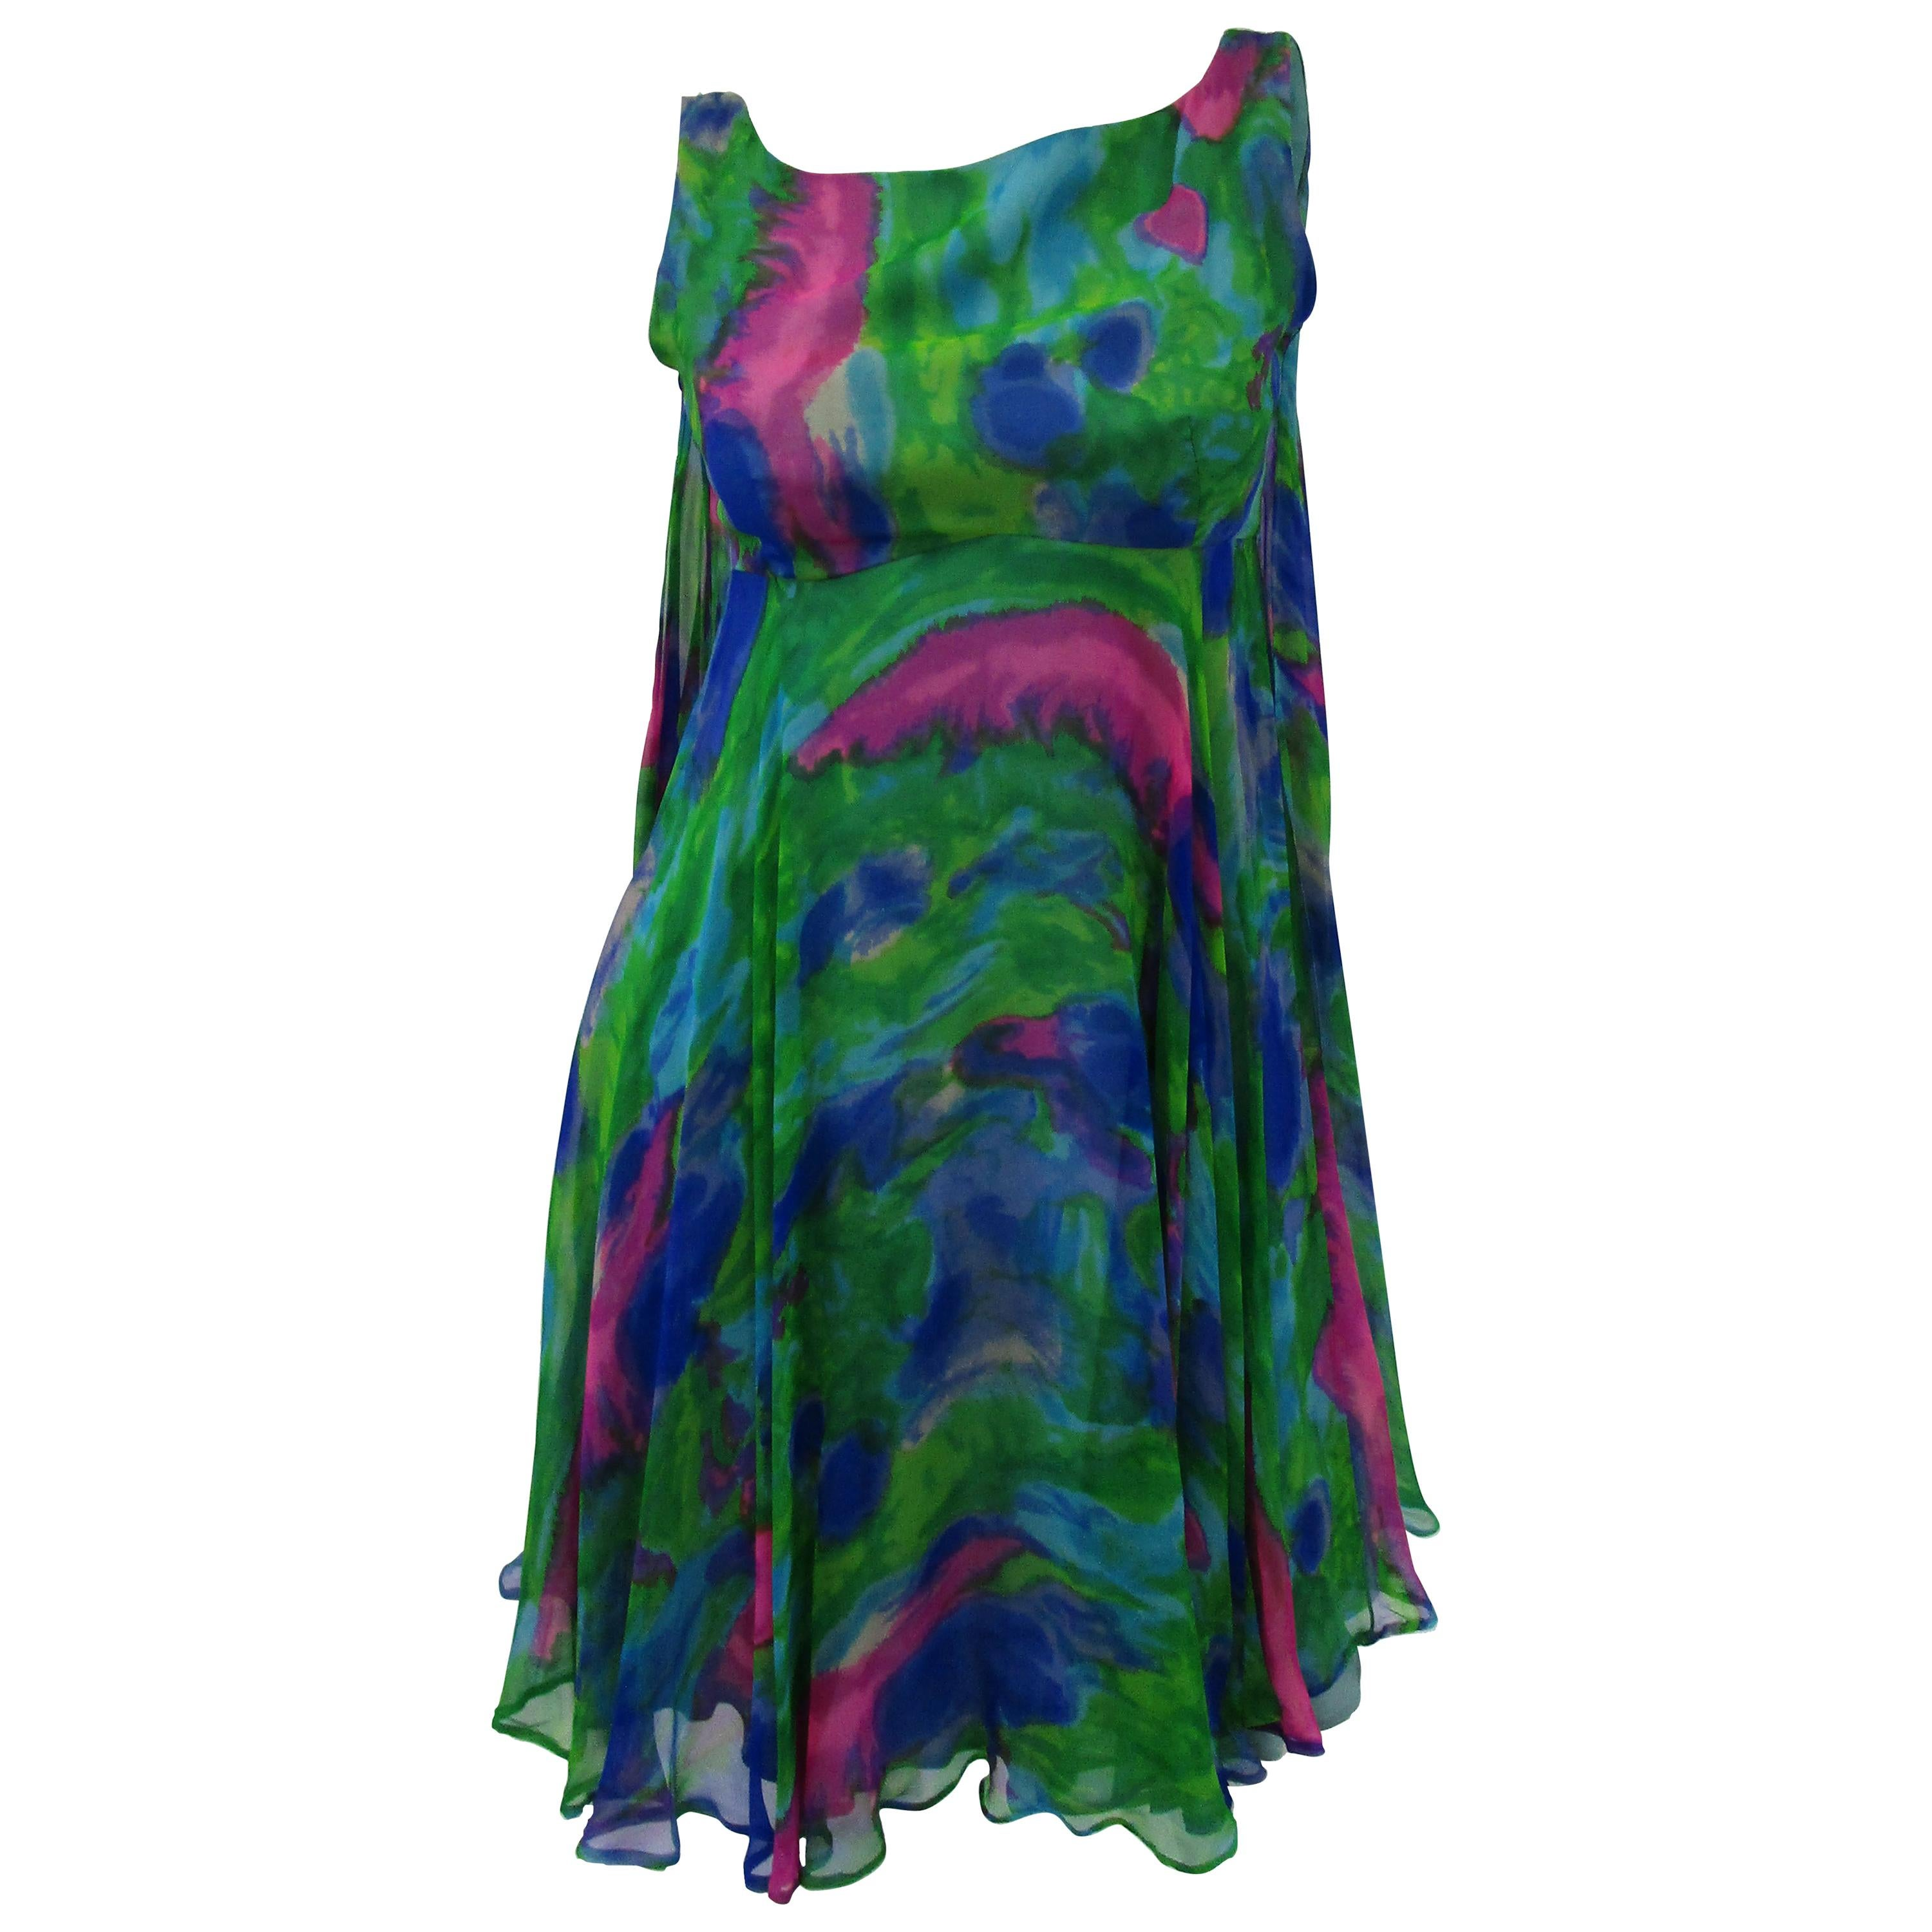 1960s Psychedelic Jerry Silverman Silk Low Back Mini Dress with Organza Overlay